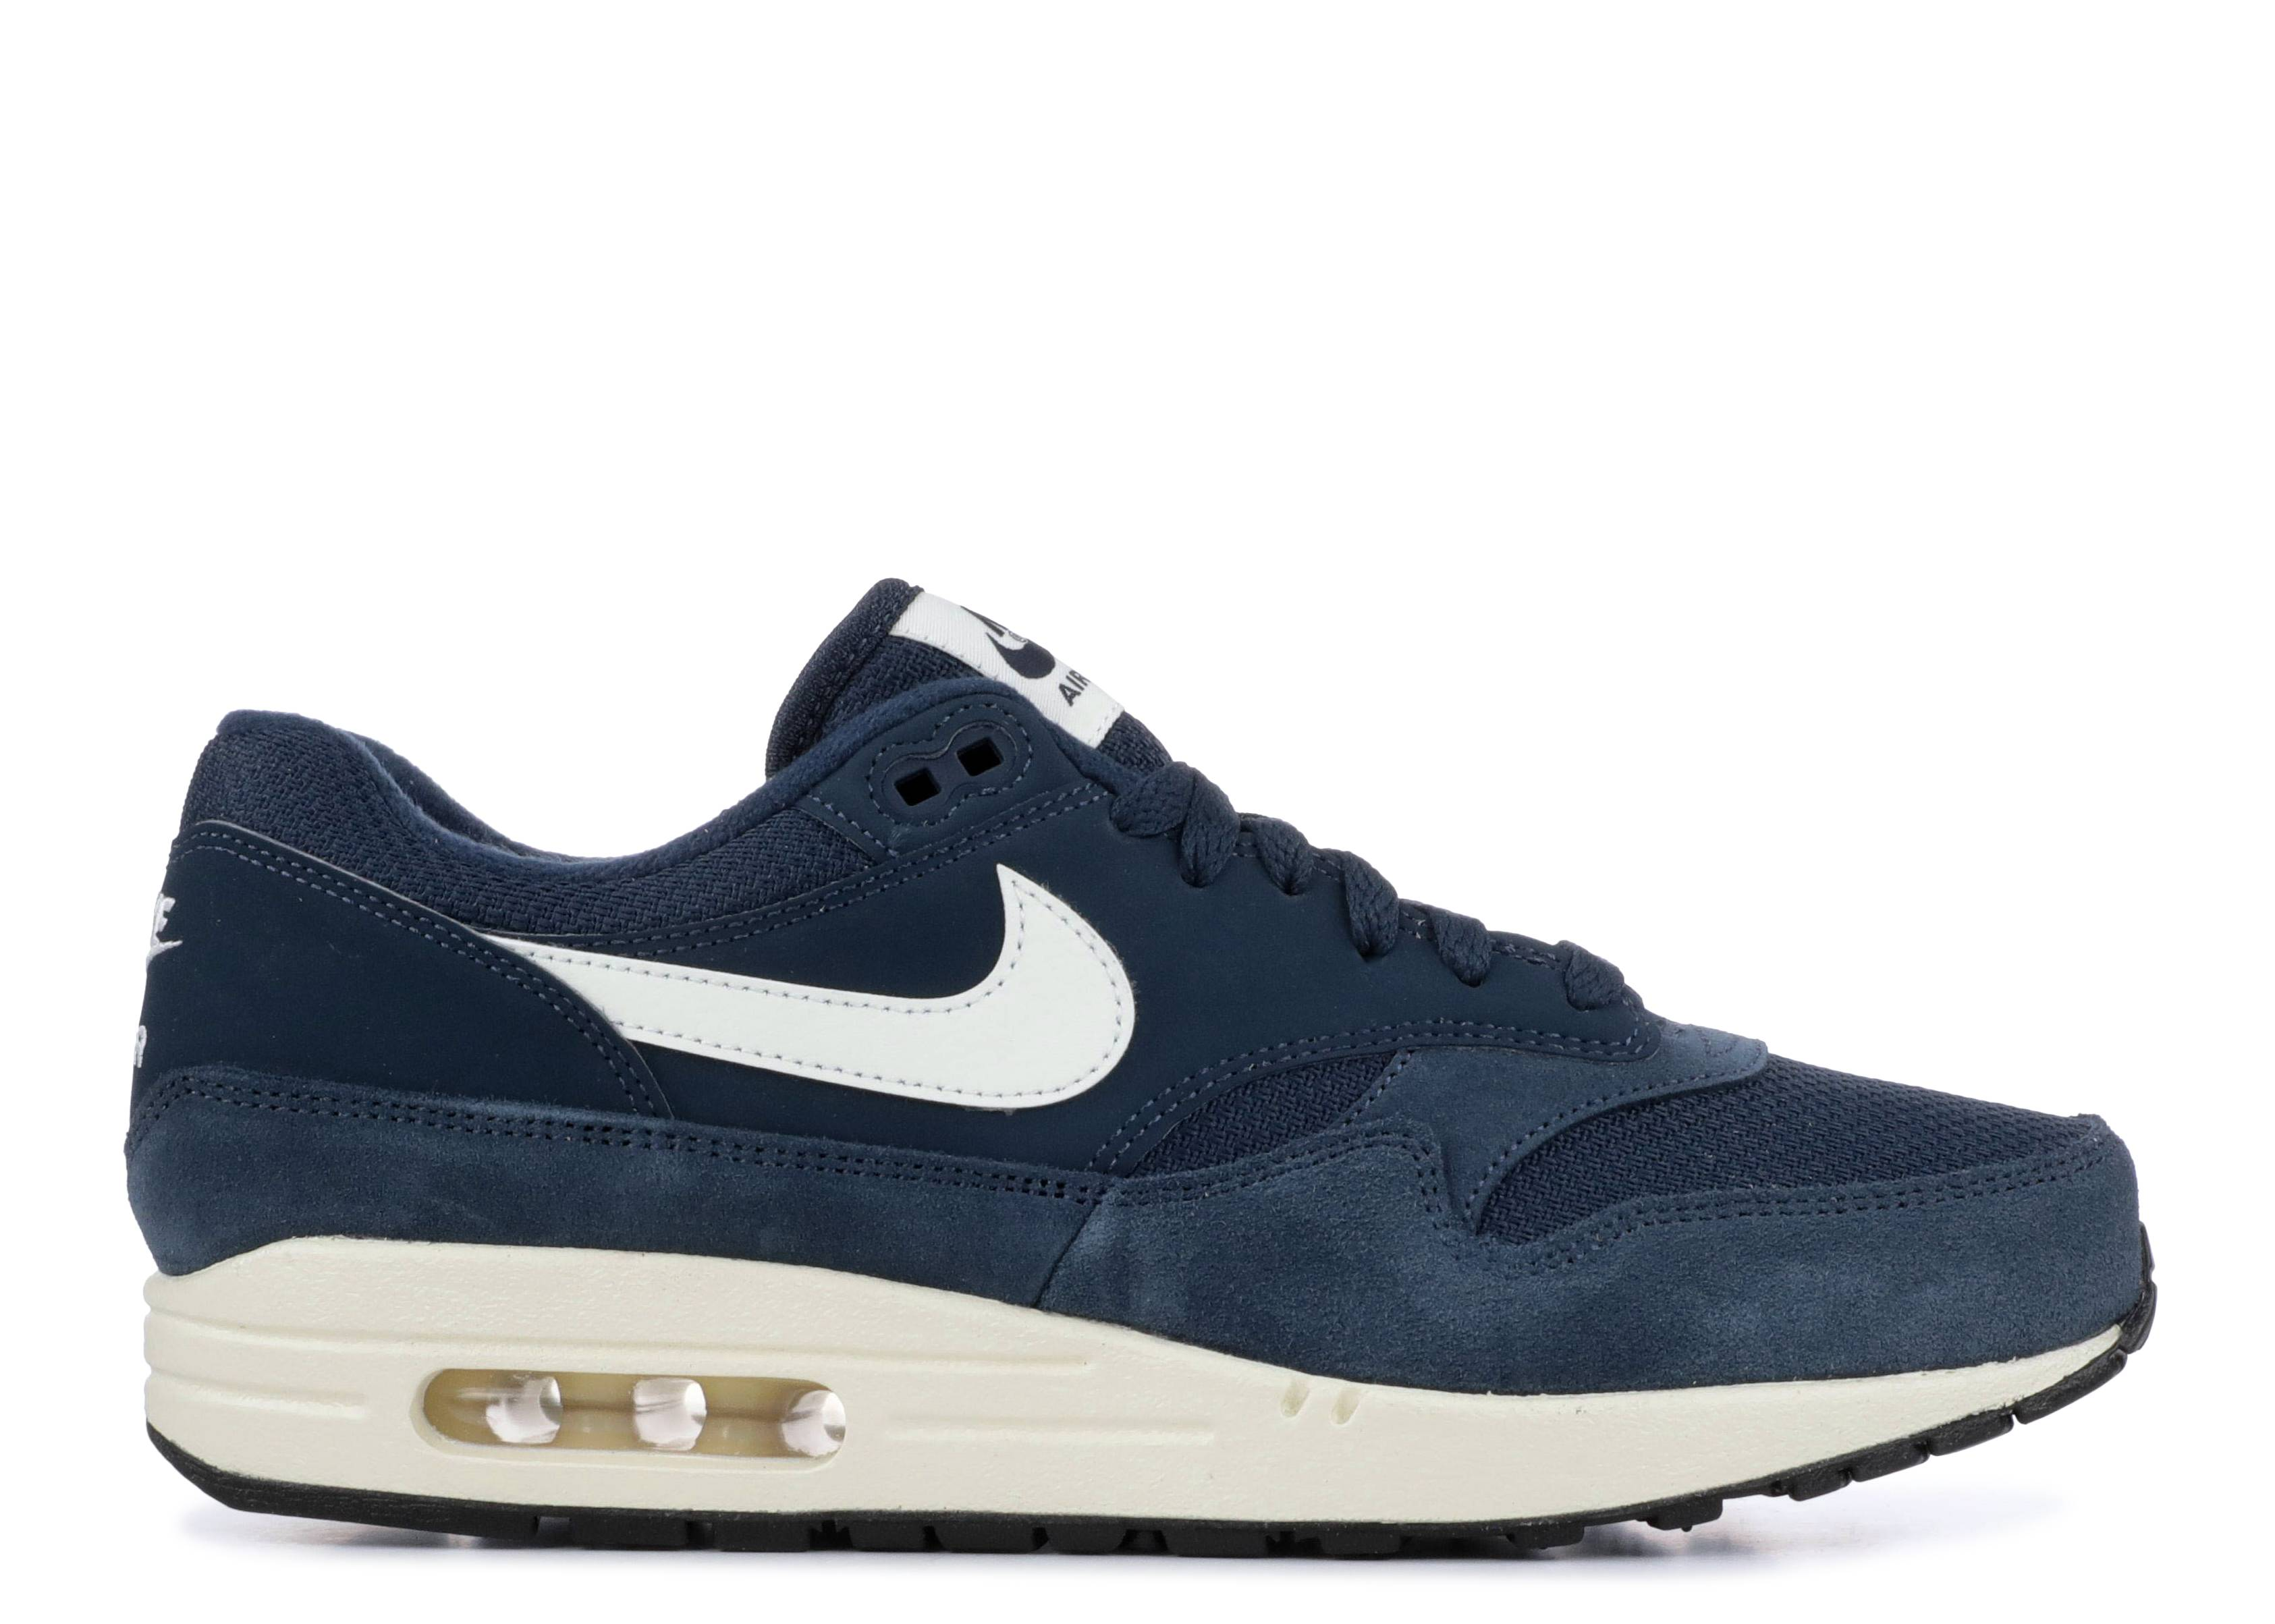 detailed look a0fab 2f970 Nike Air Max 1 - Nike - ah8145 401 - armory navysail - sail